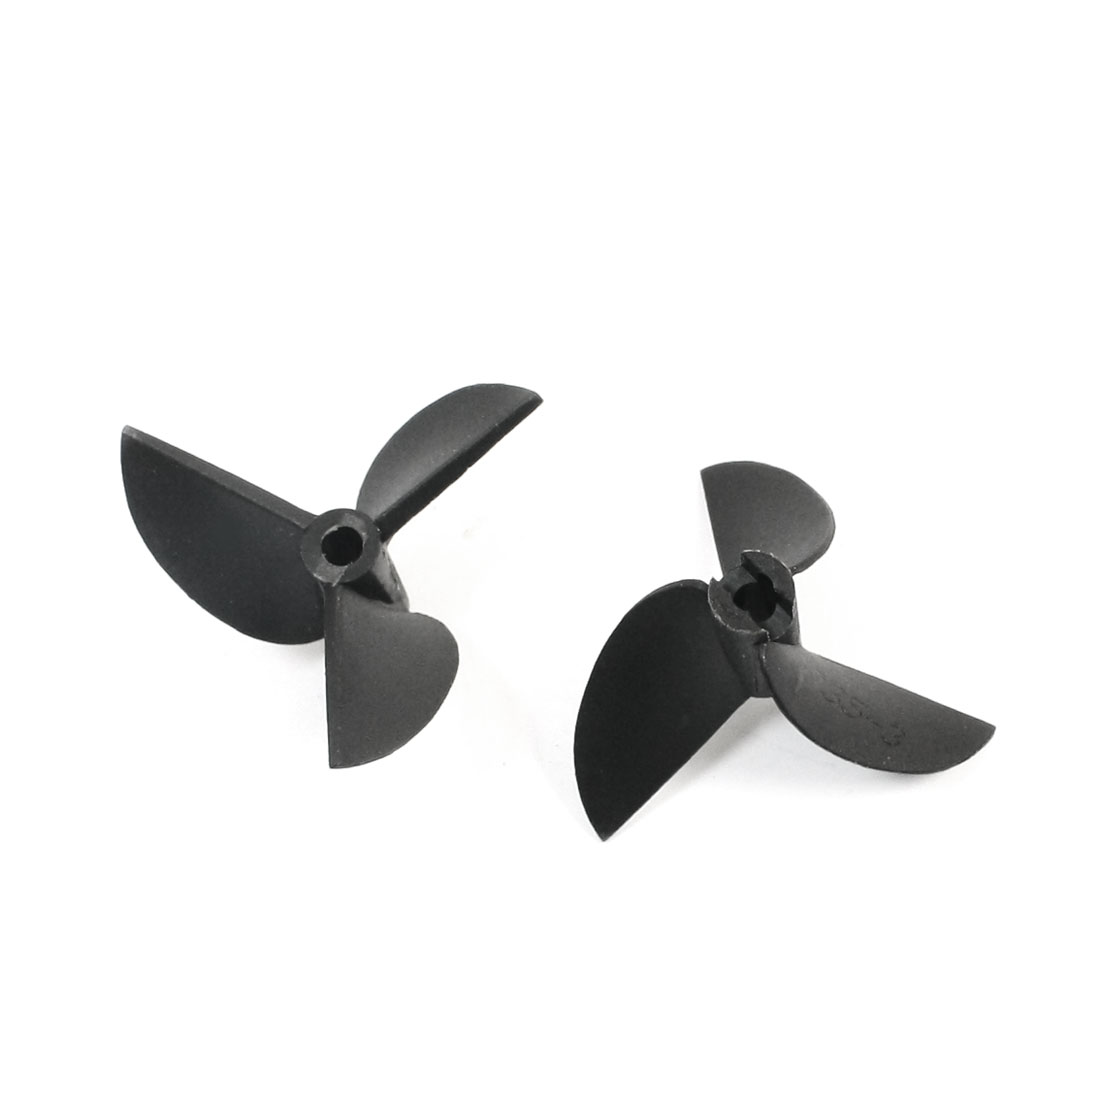 "2Pcs 35mm Dia 1.9 Black Plastic 3 Vanes CW Rotating Propeller Prop 3519 for 1/8"" Shaft RC Model Ship Boat"